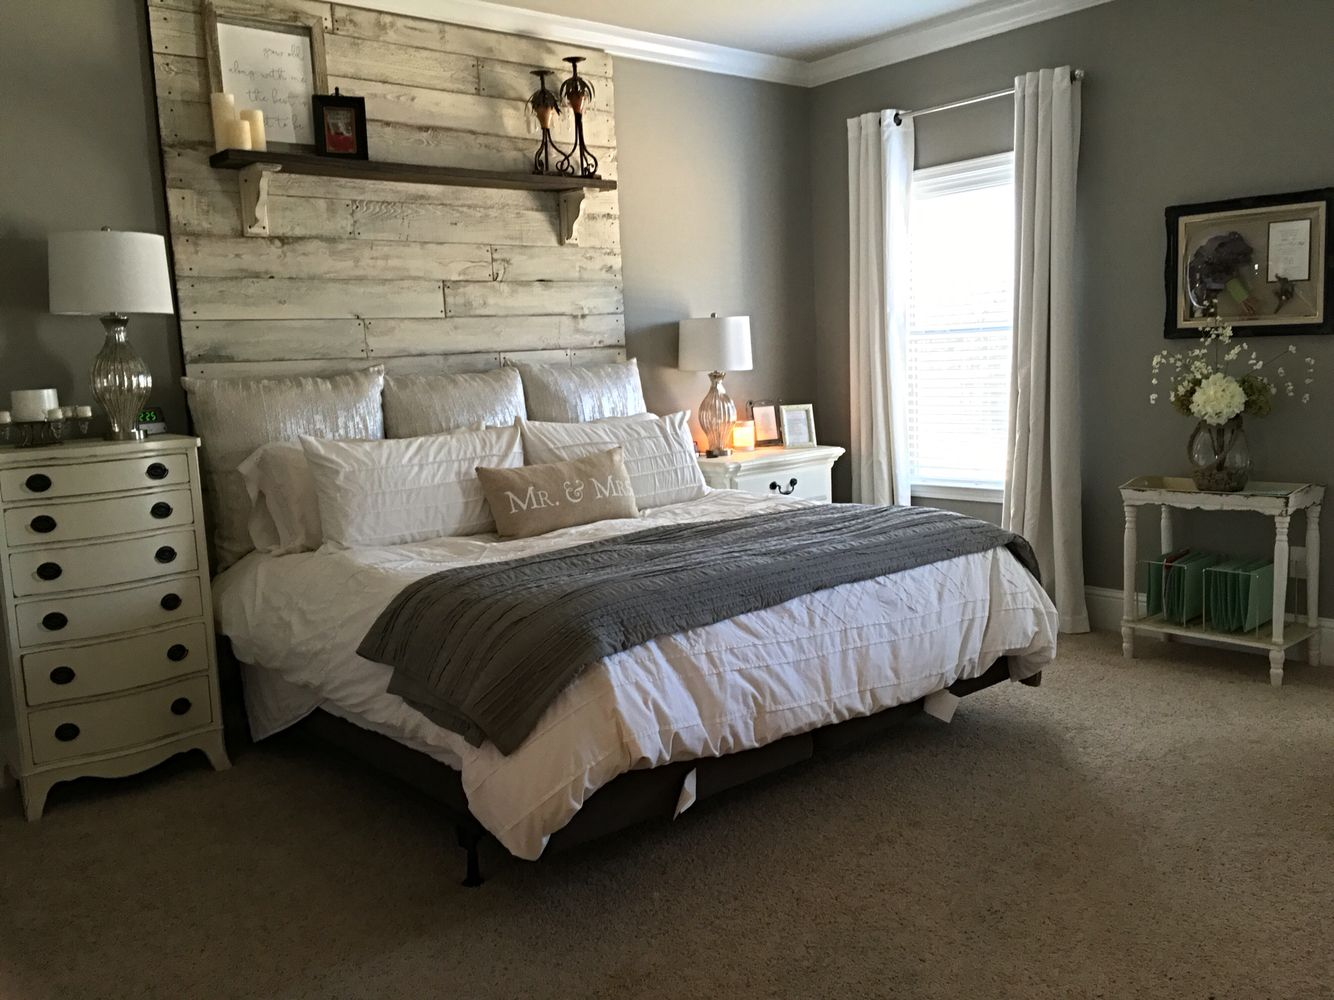 Master Bedroom Sherwin Williams Dorian gray walls and Sherwin Williams  worldly gray ceiling. And our custom floor to ceiling headboard complements  of my ...